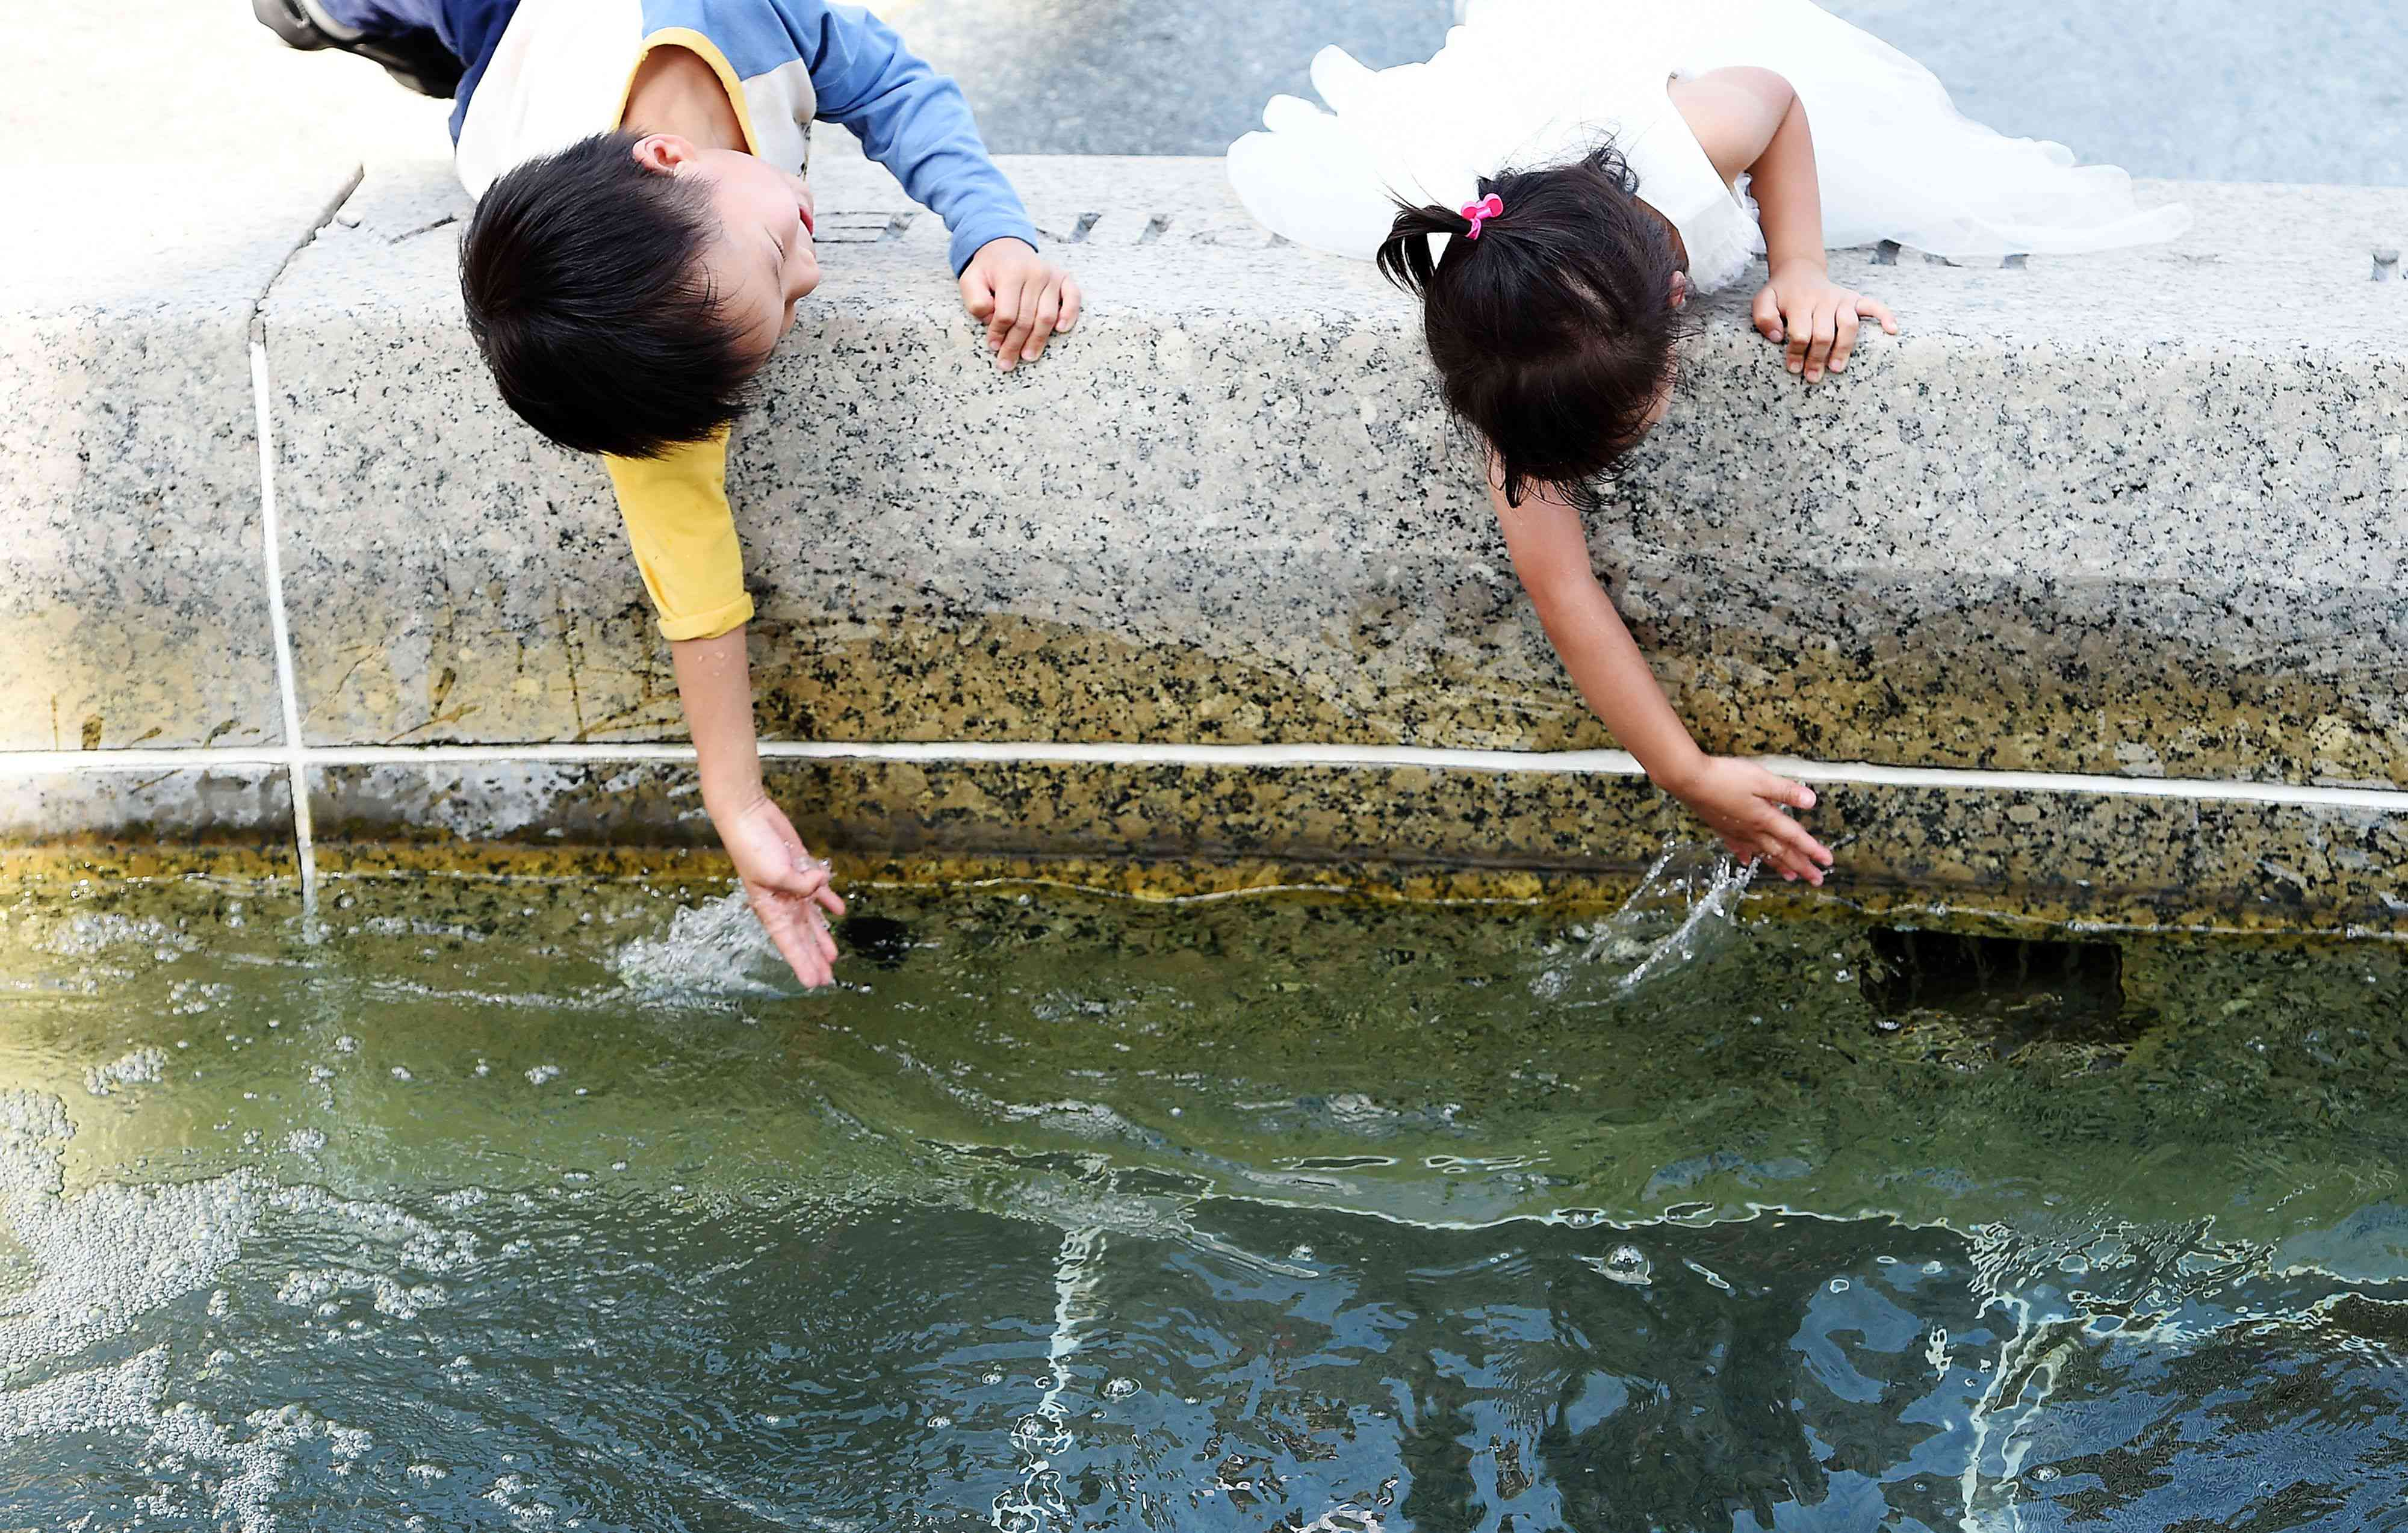 Kids playing in a water fountain.